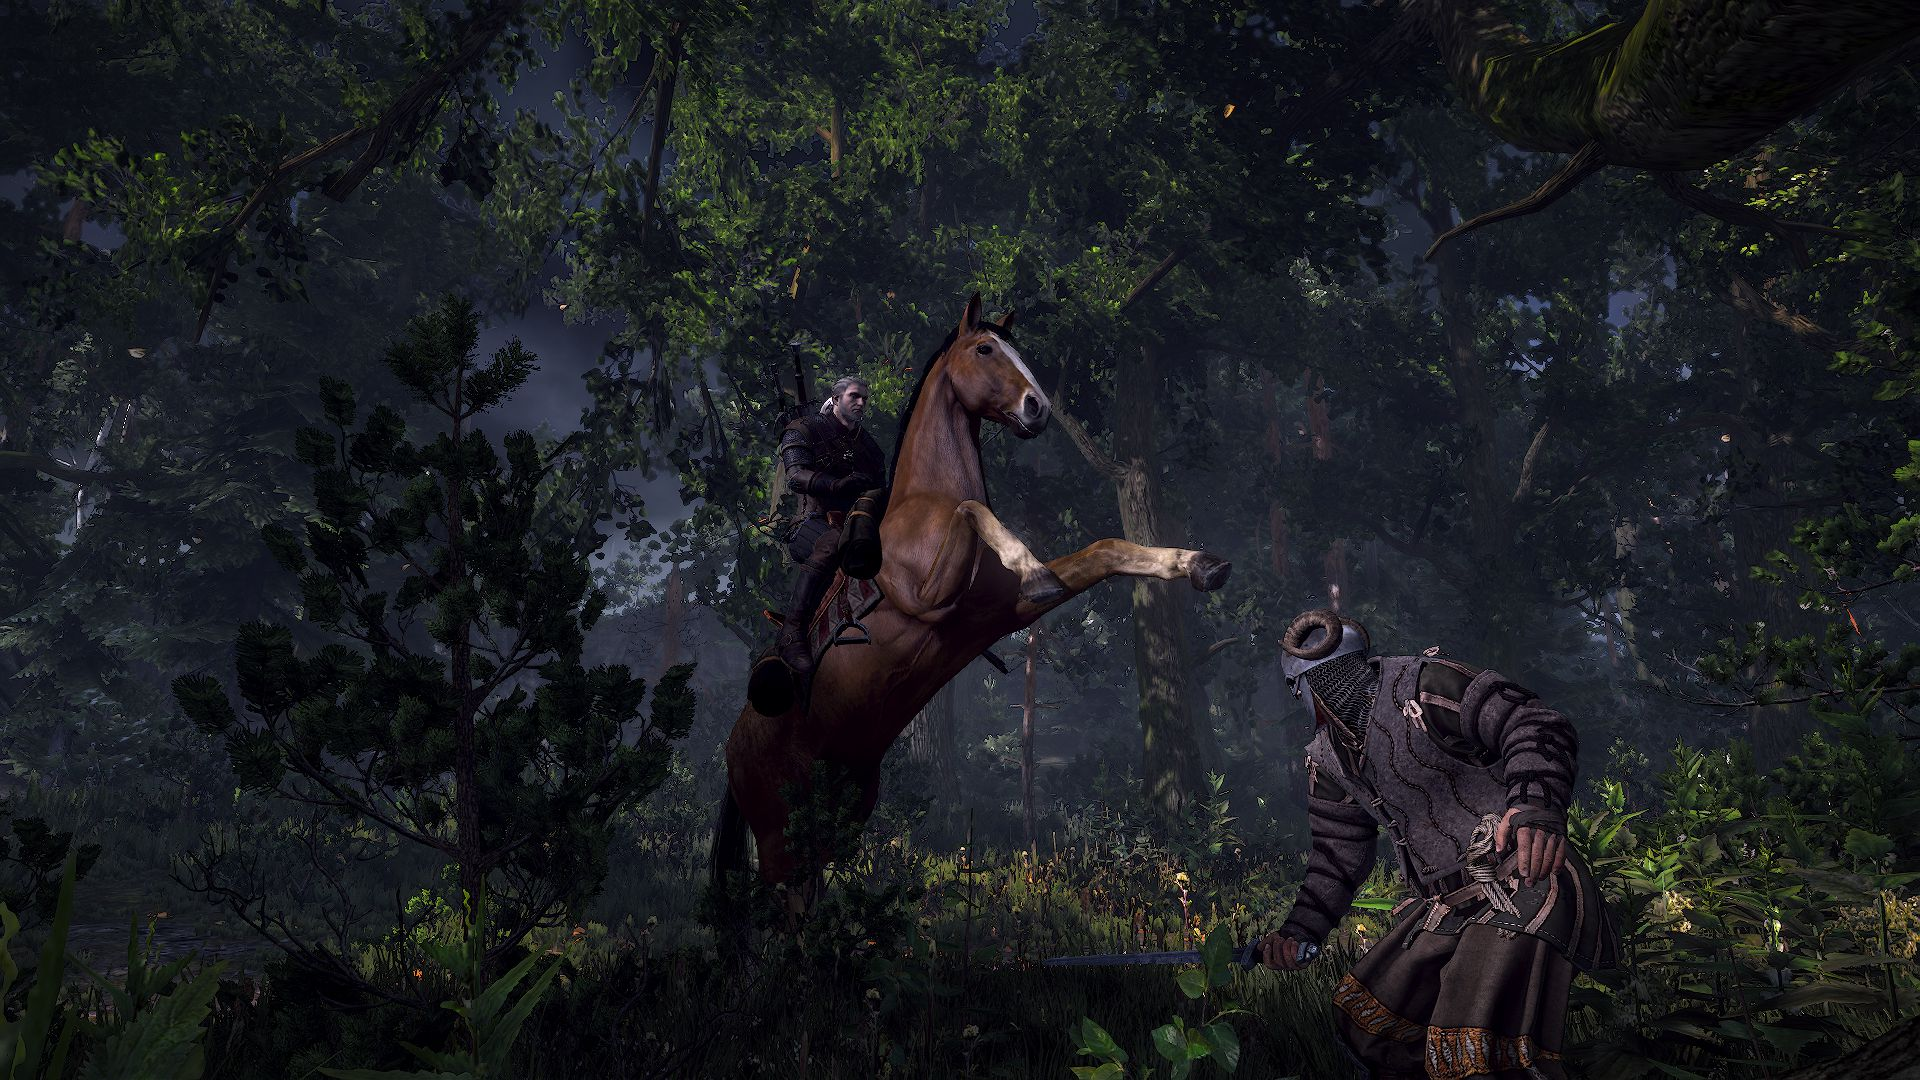 the_witcher_3_wild_hunt_horse_ride_1402422276